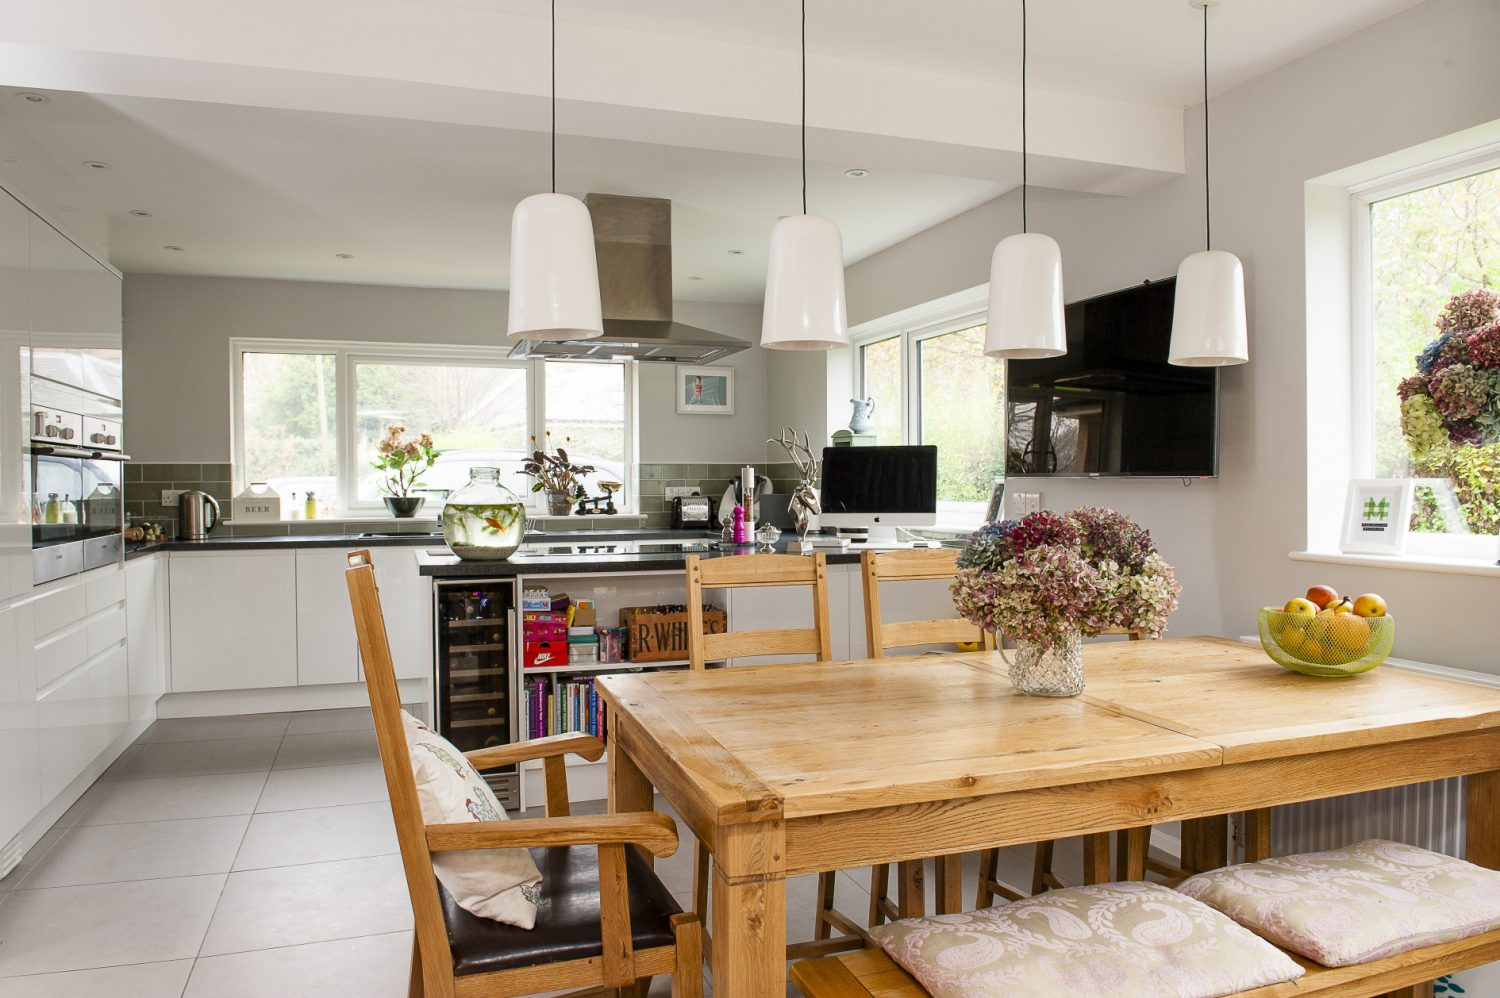 Over the dining table from the Simply Oak range from House of Oak are glass-shaded lights from John Lewis that look uniform but take on individual characteristics when lit